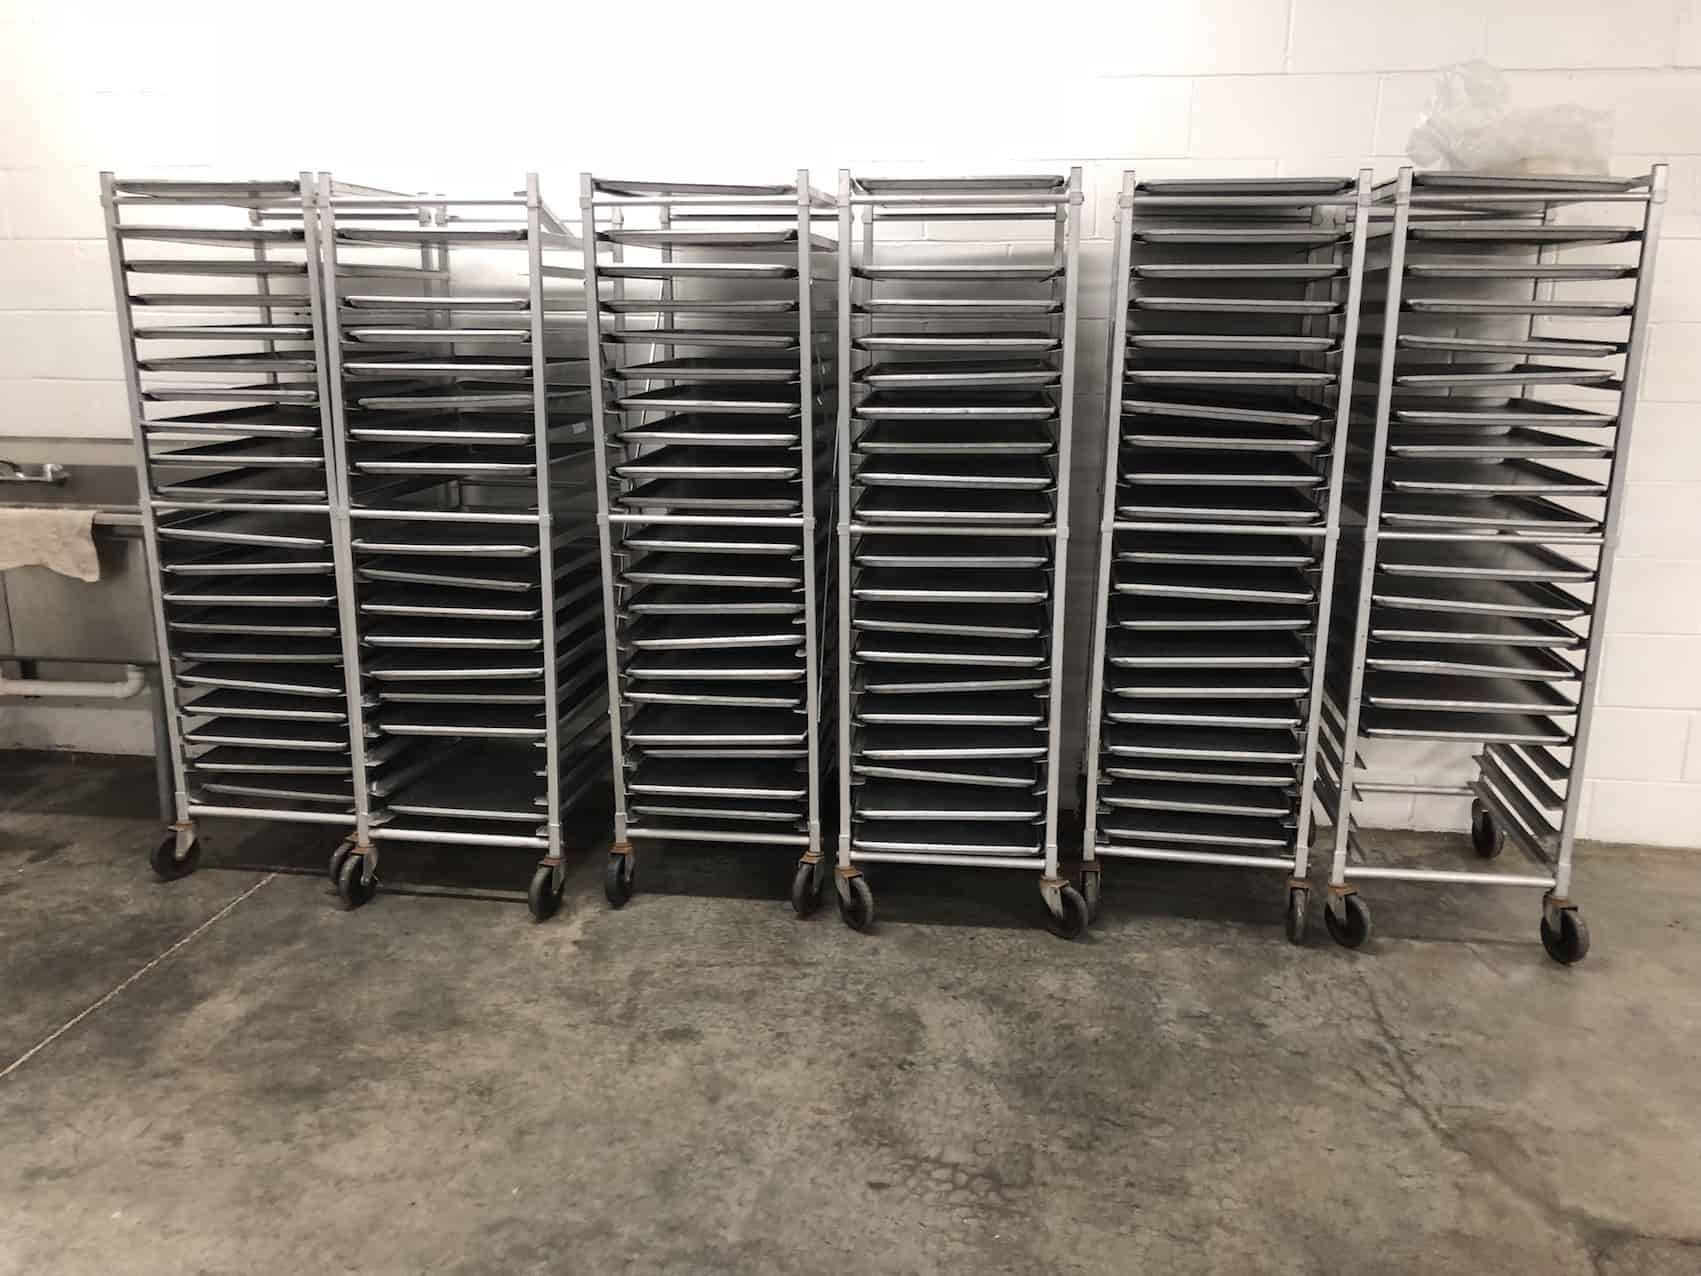 "(6) Channel approximately 64"" Tall Tray racks, mounted on casters, 20 Tray Capacity"